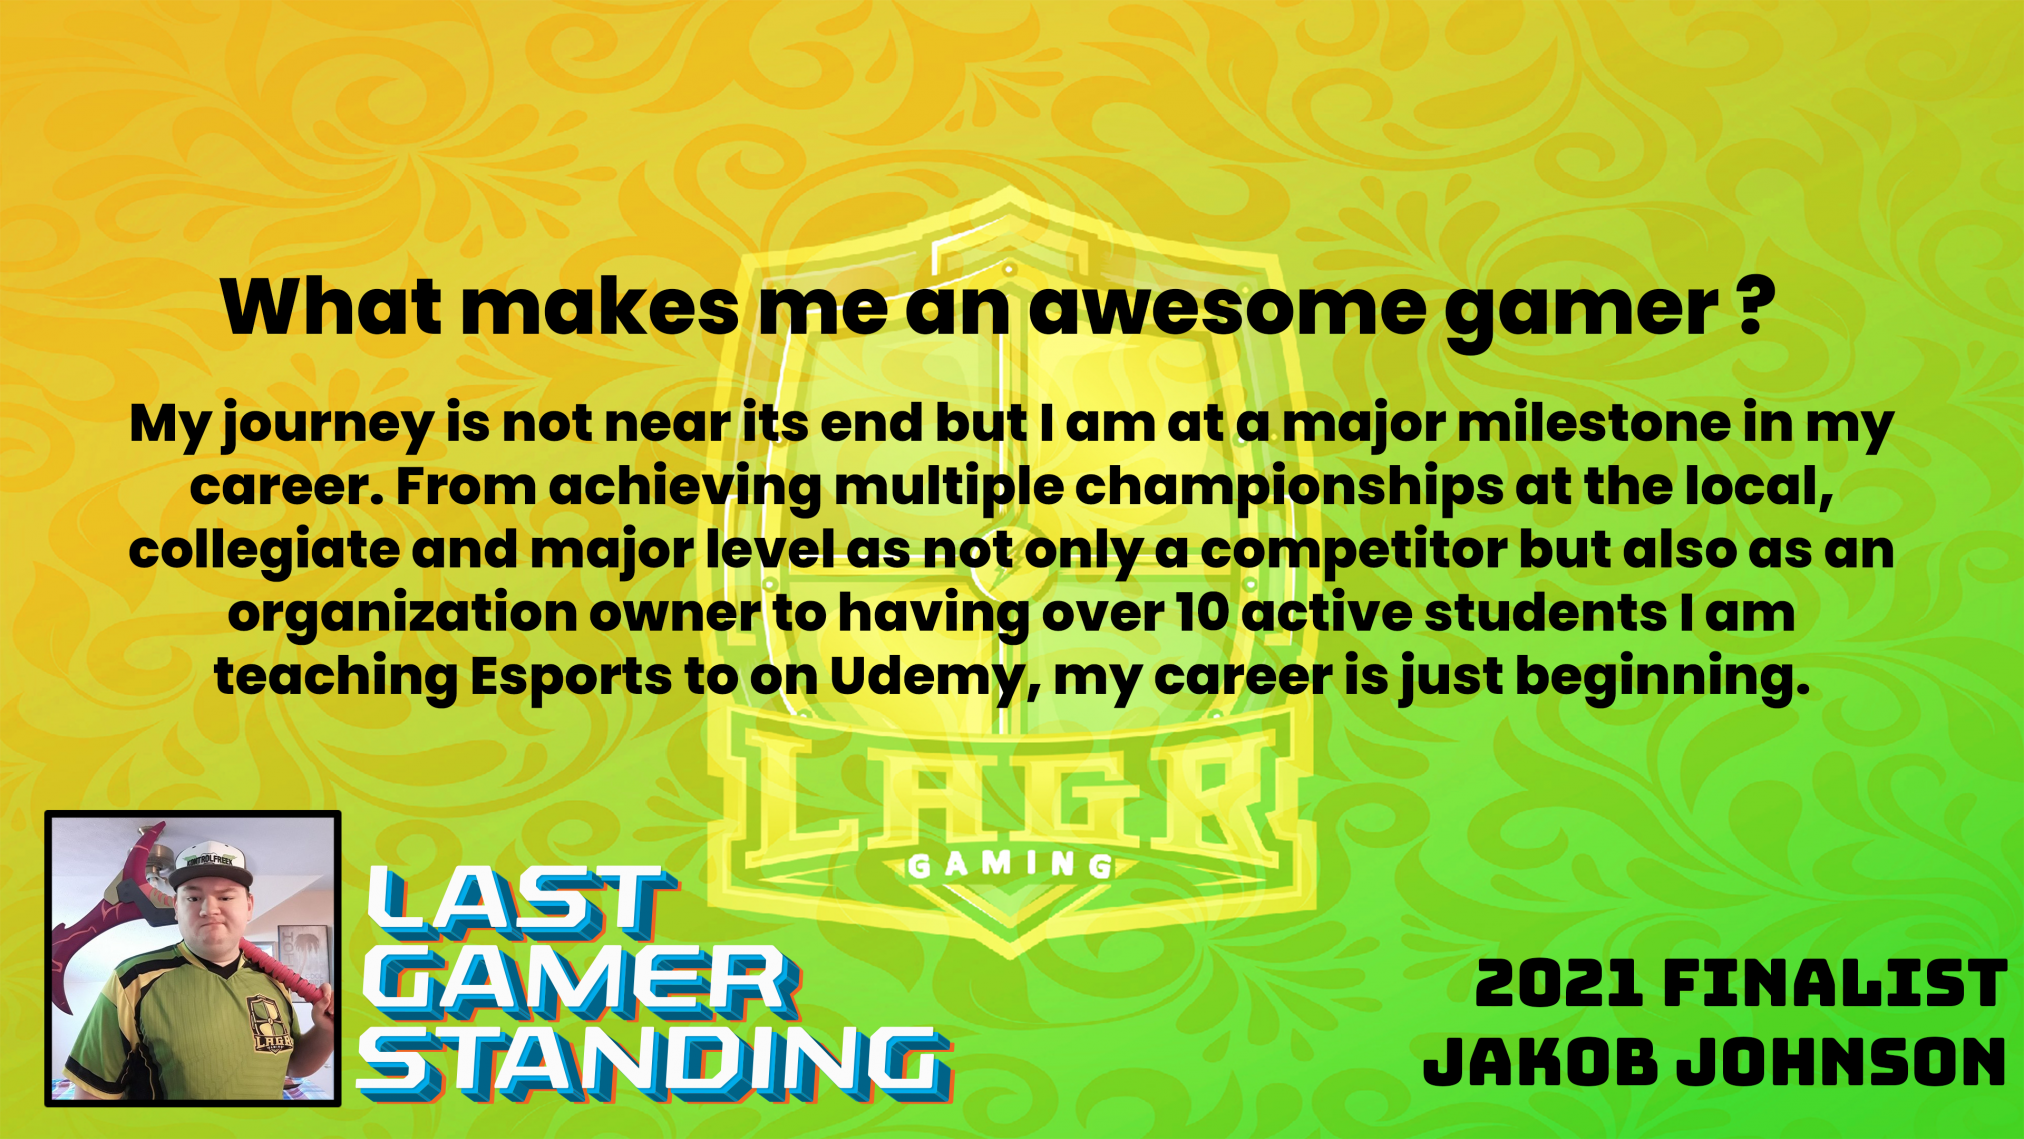 Last Gamer Standing Finalist - What makes me an awesome gamer ? Feature Image